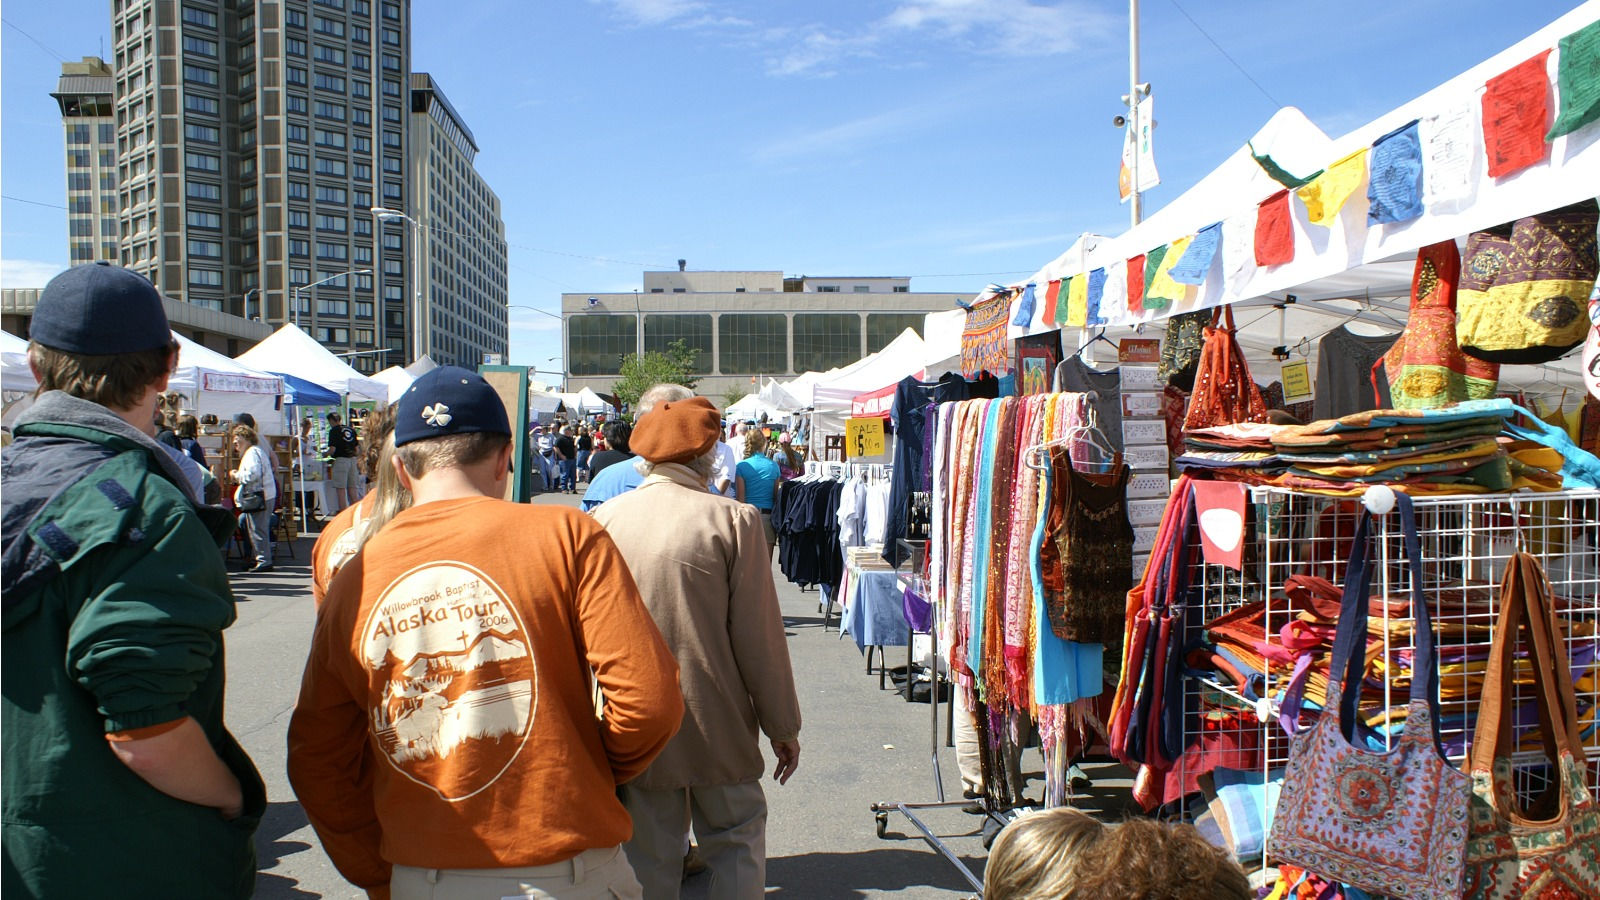 Things to do in Anchorage - Market & Festival